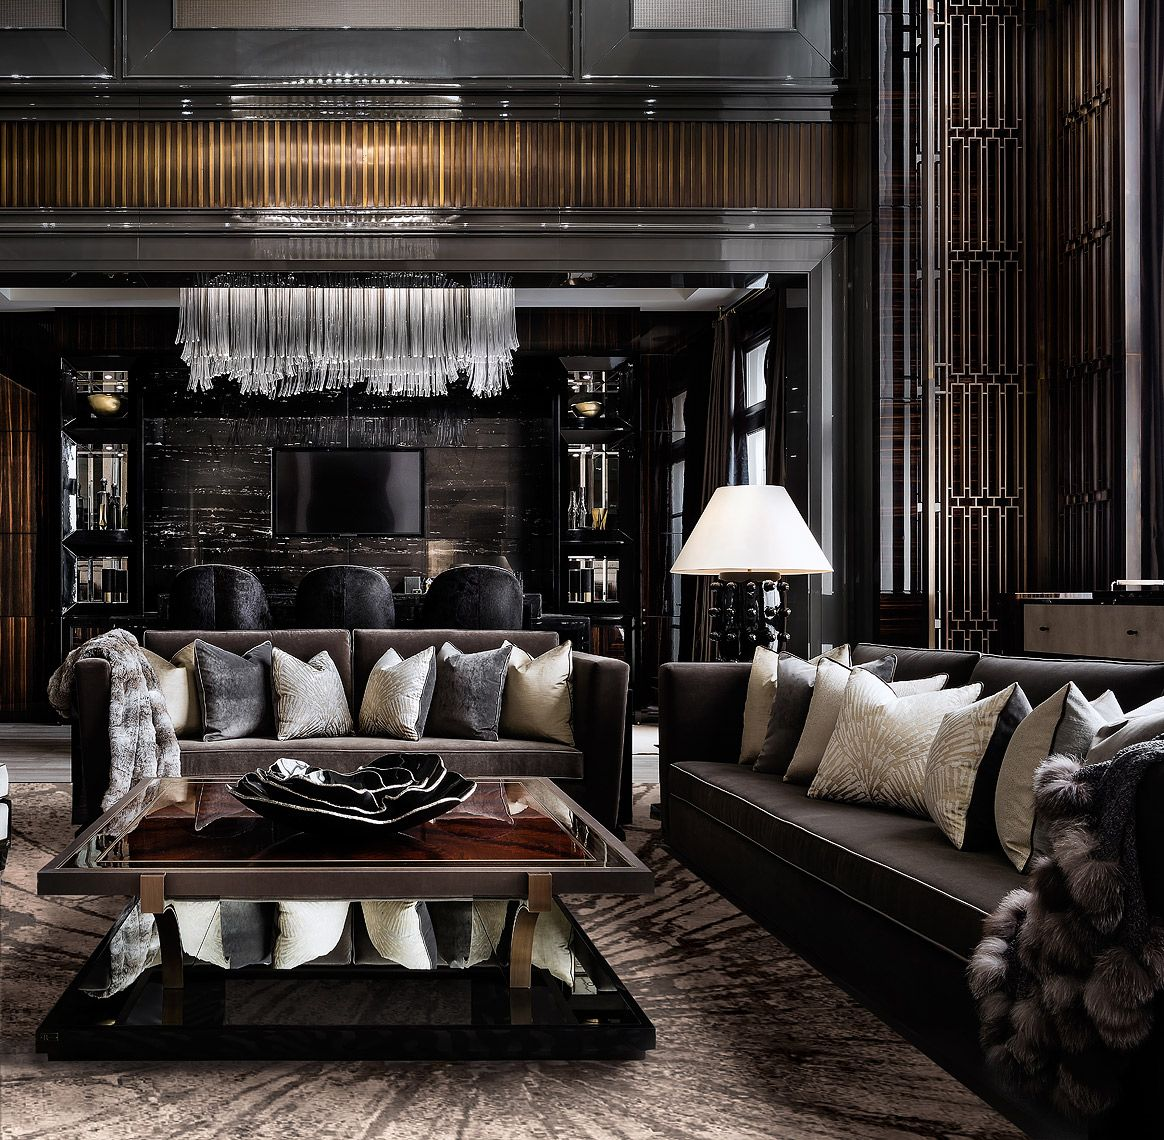 Home Decor 2012 Luxury Homes Interior Decoration Living: 200 Russell Hill Living Room By Designer Lori Morris In